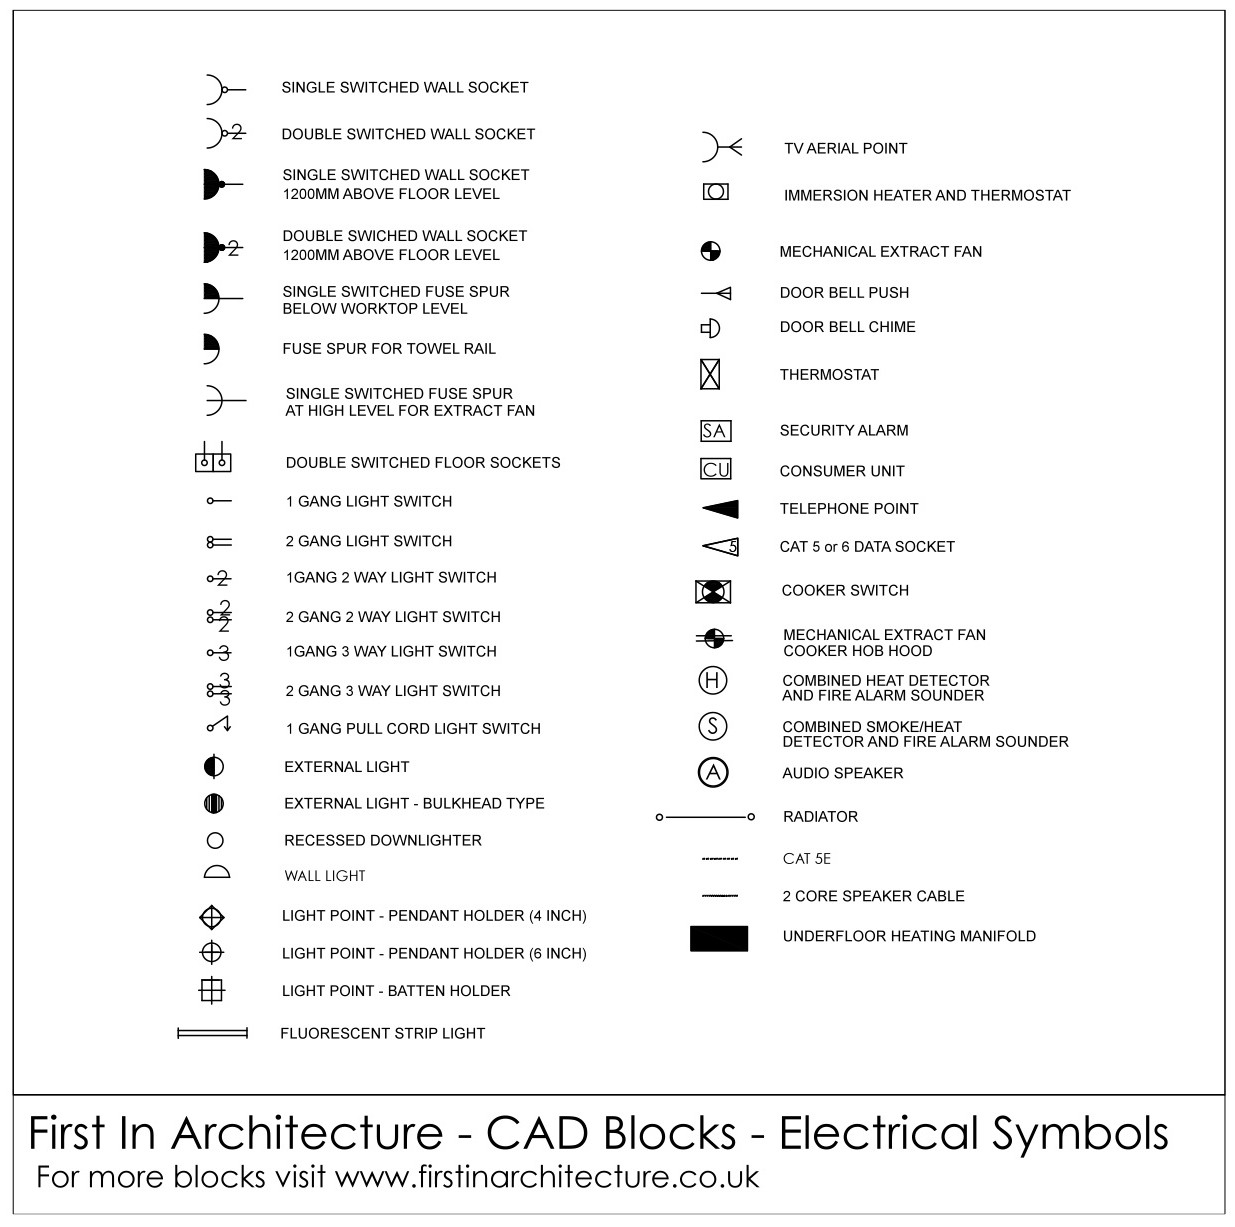 Free Cad Blocks Electrical Symbols First In Architecture